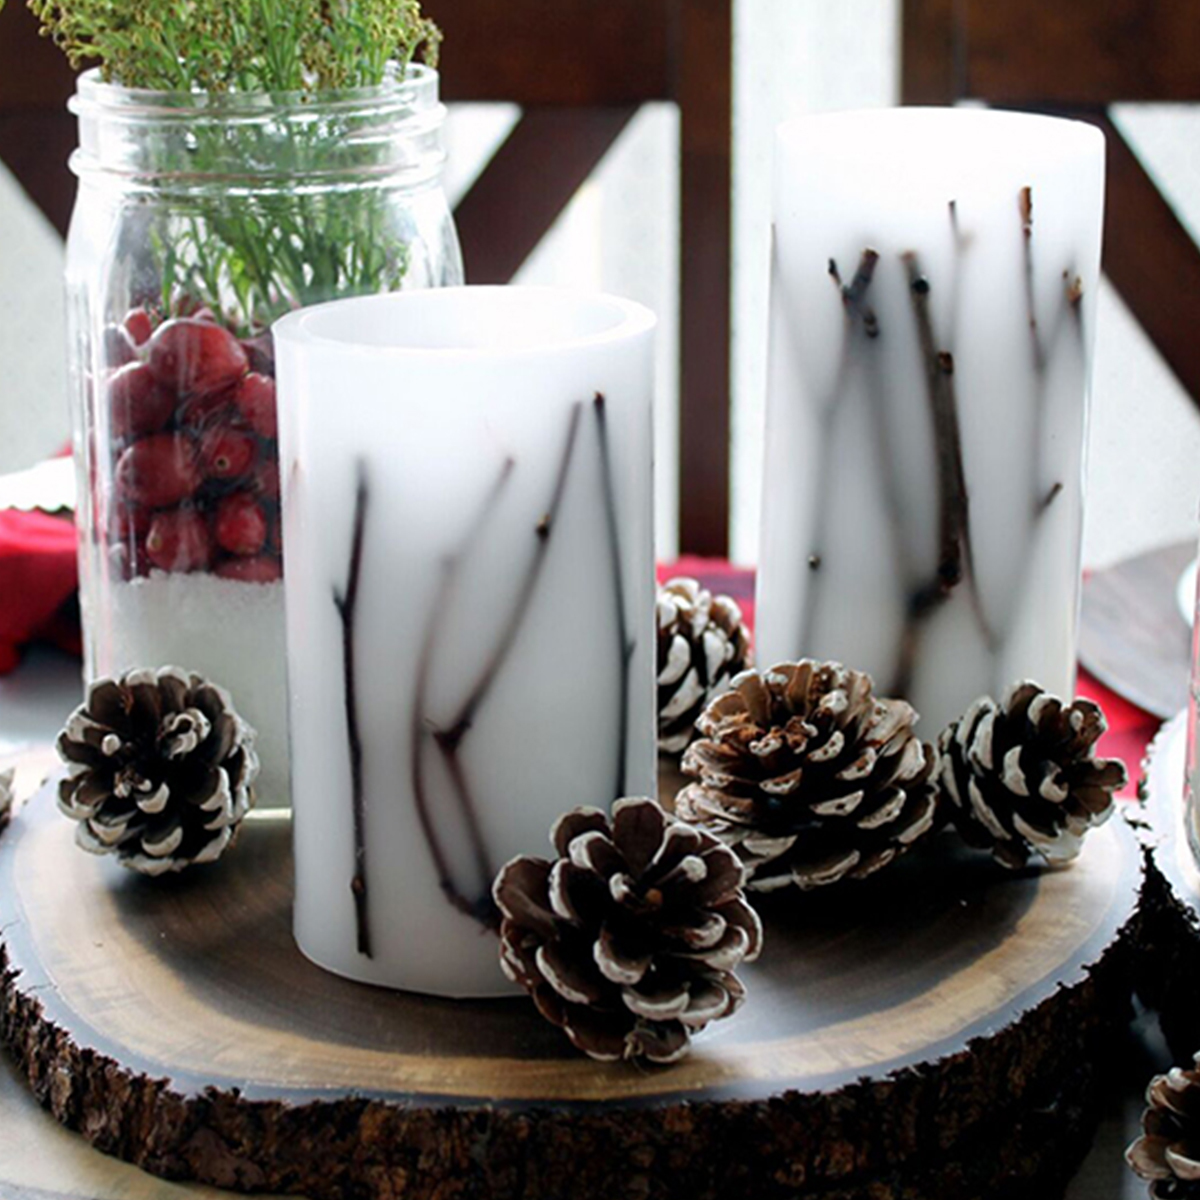 Better Homes & Gardens candles with pinecones and tree branches photo